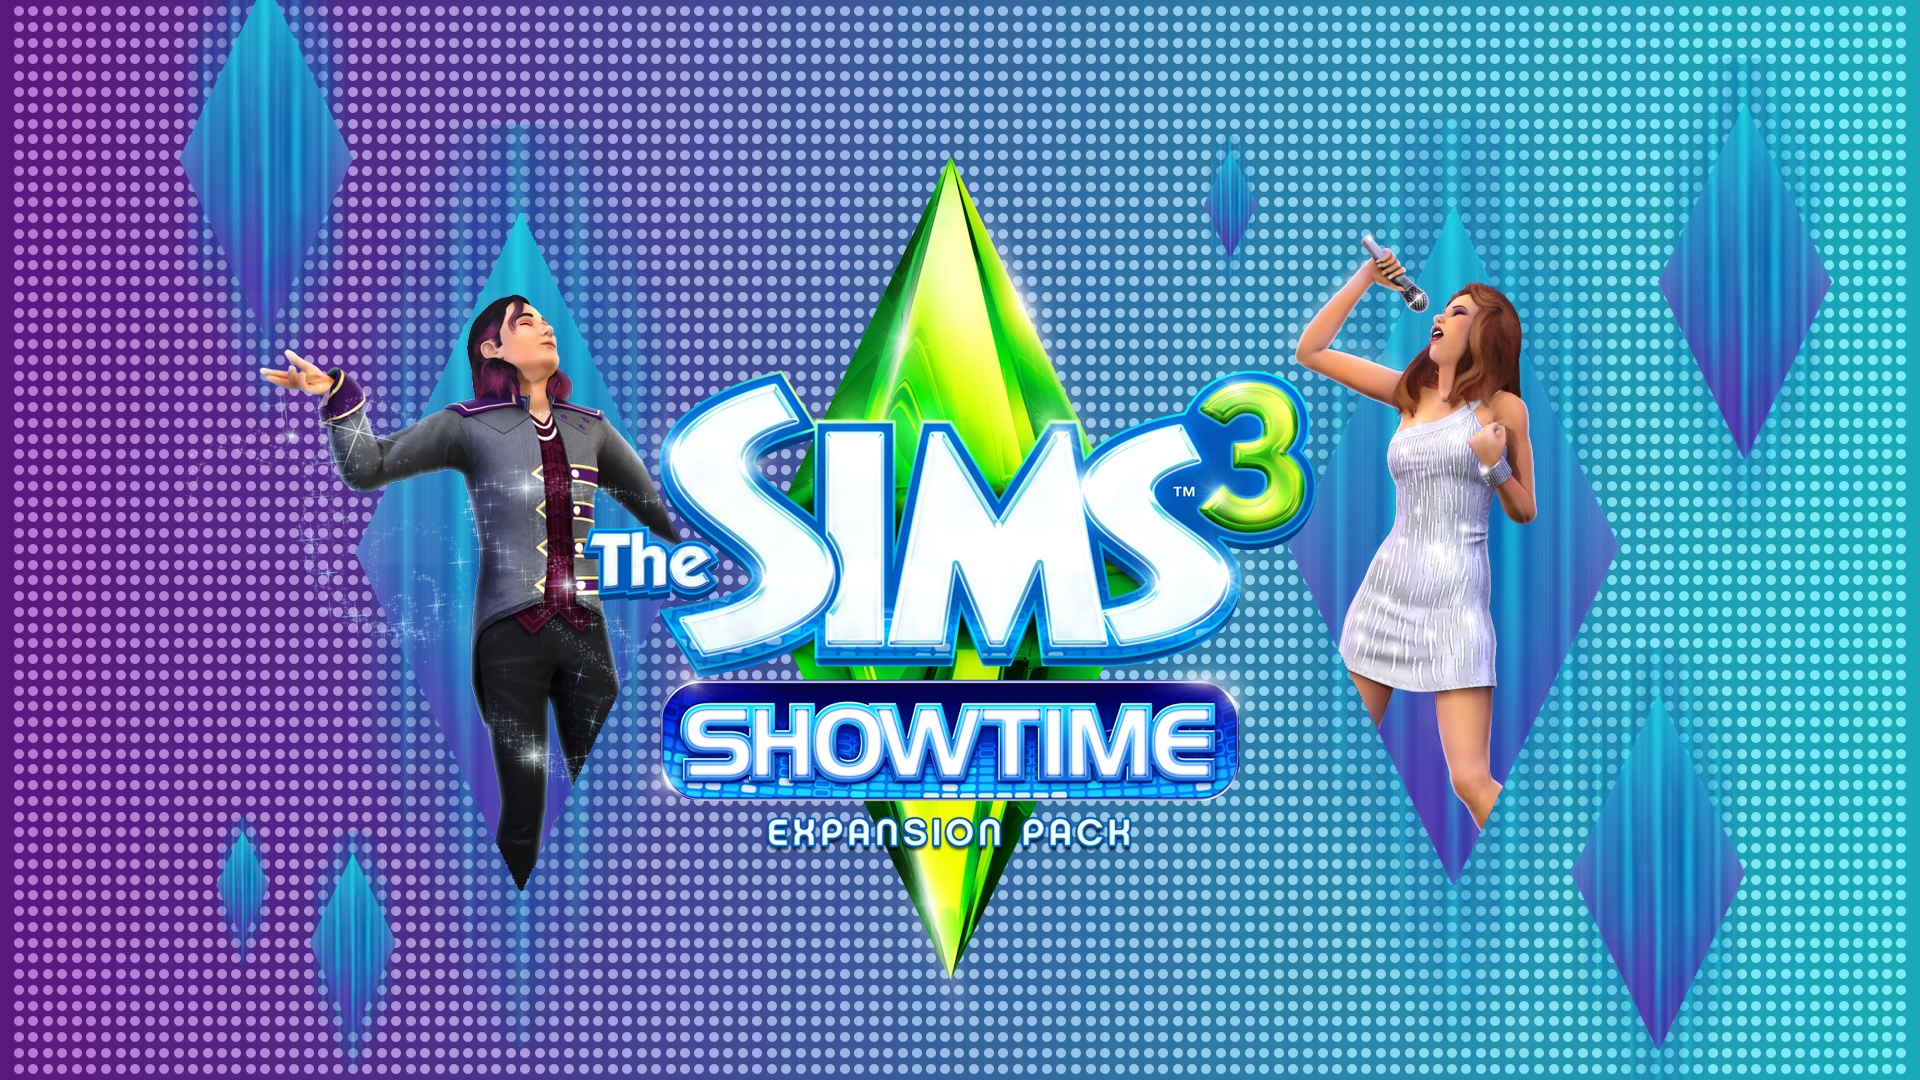 The sims 3showtime free nude skins pc cartoon video